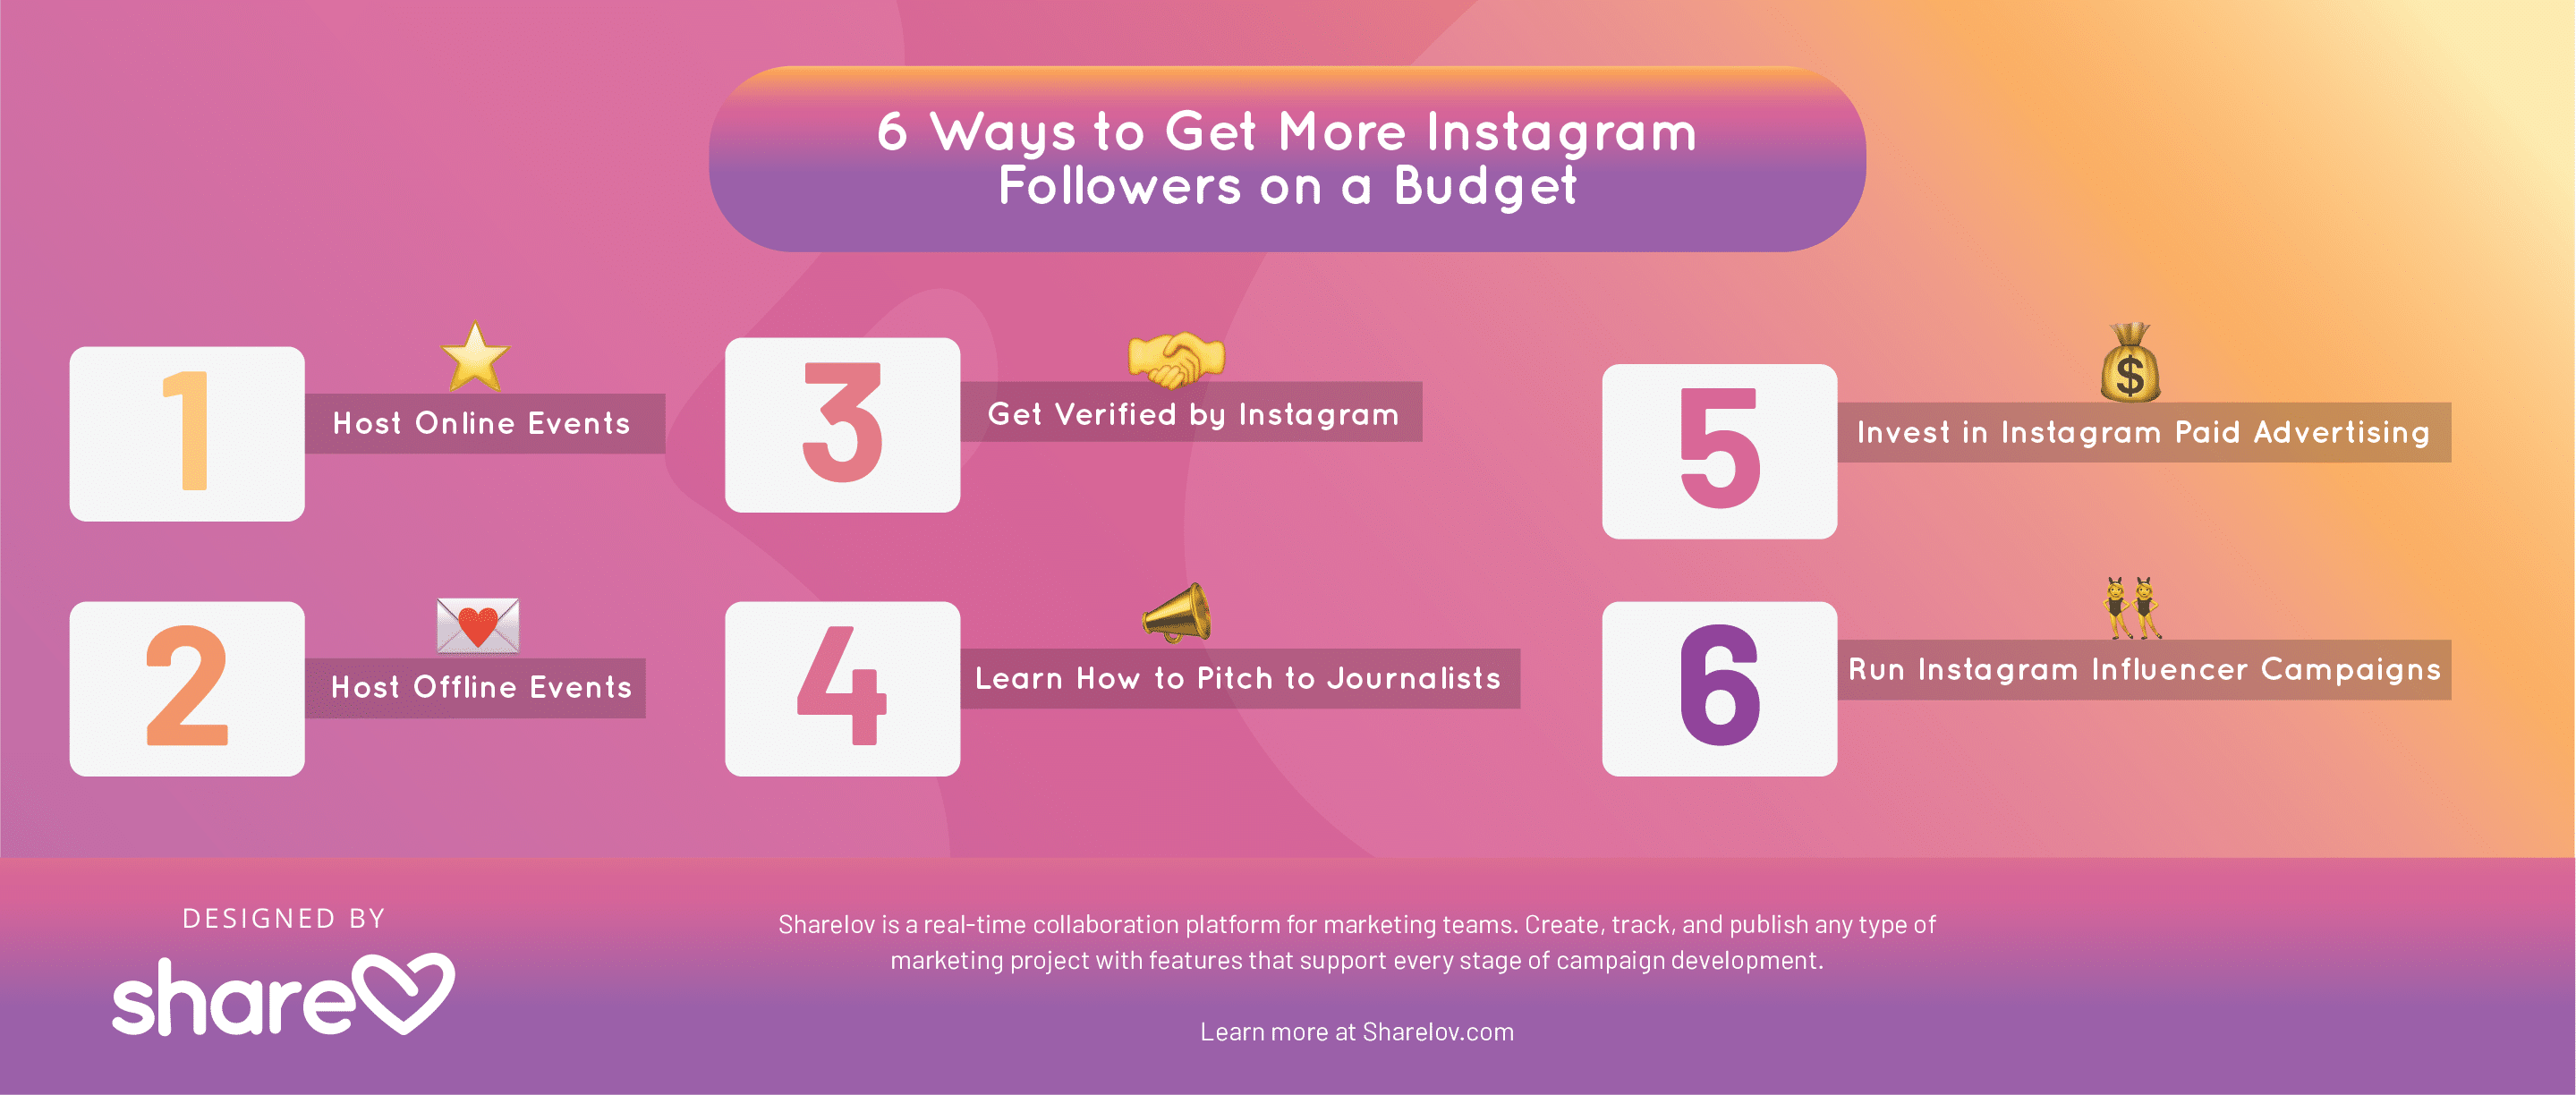 6 Ways to Get More Instagram Followers on a Budget